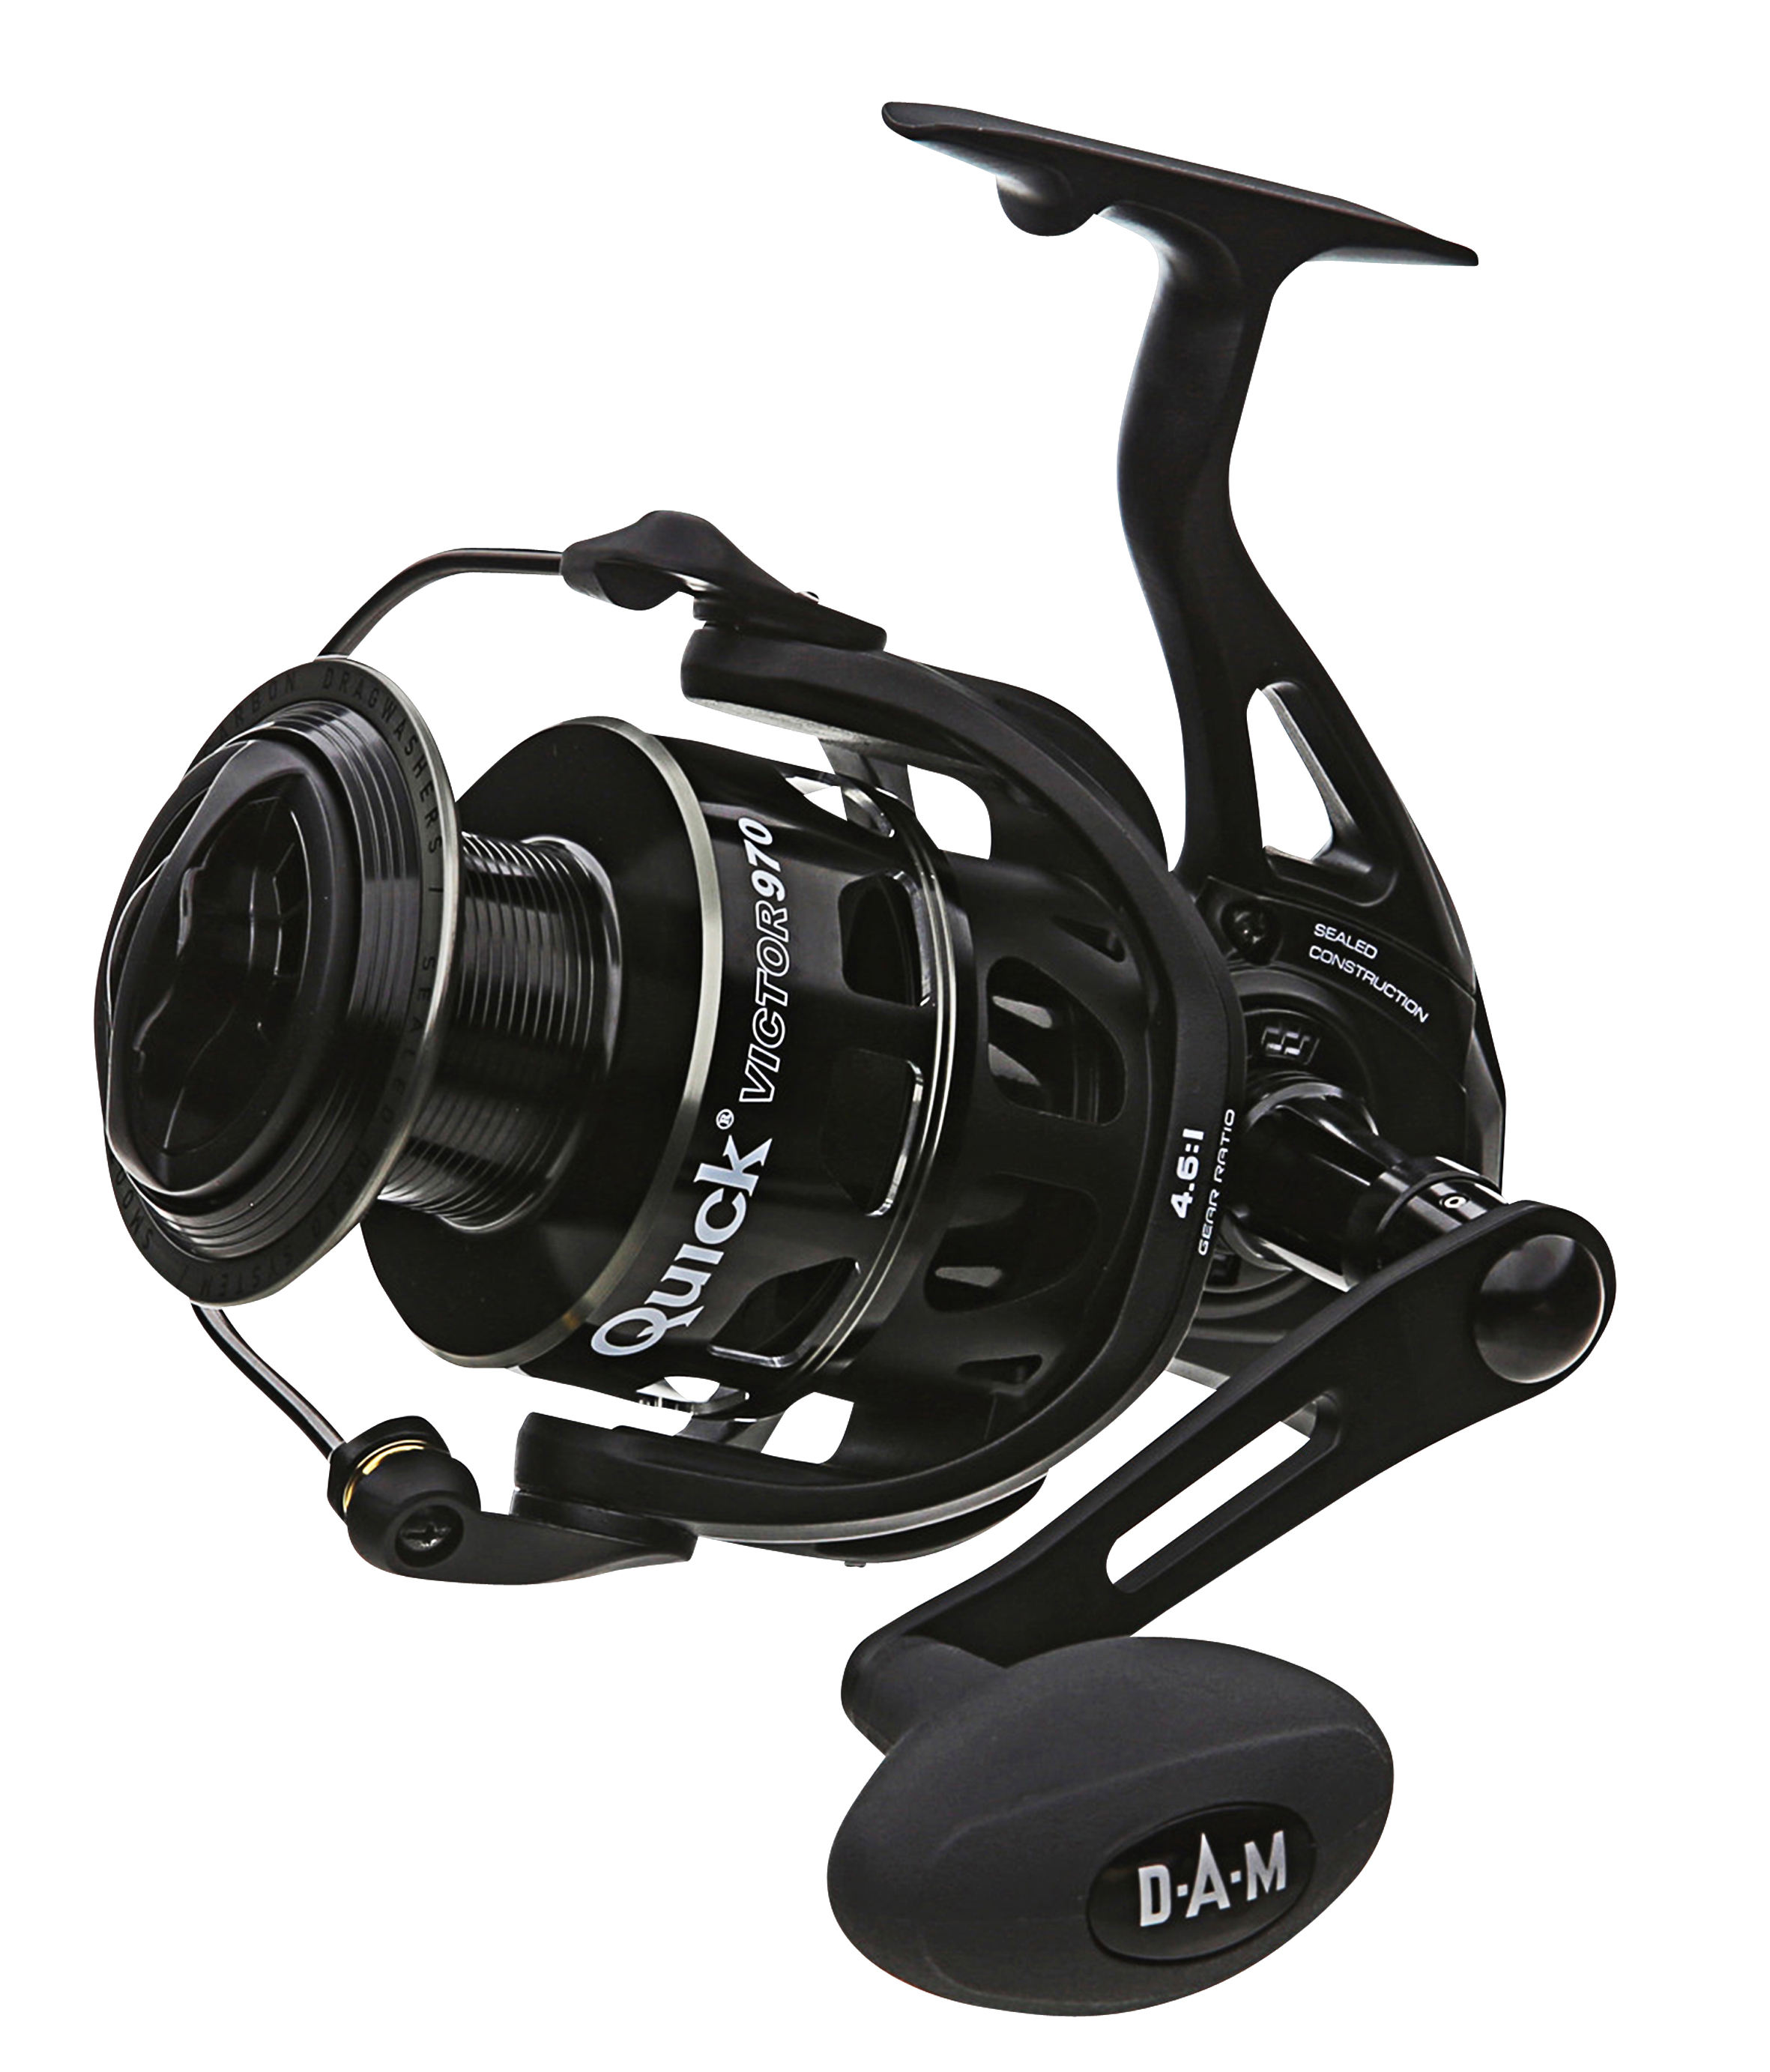 D.A.M. Quick Victor Fixed Spool Reel - Glasgow Angling Centre